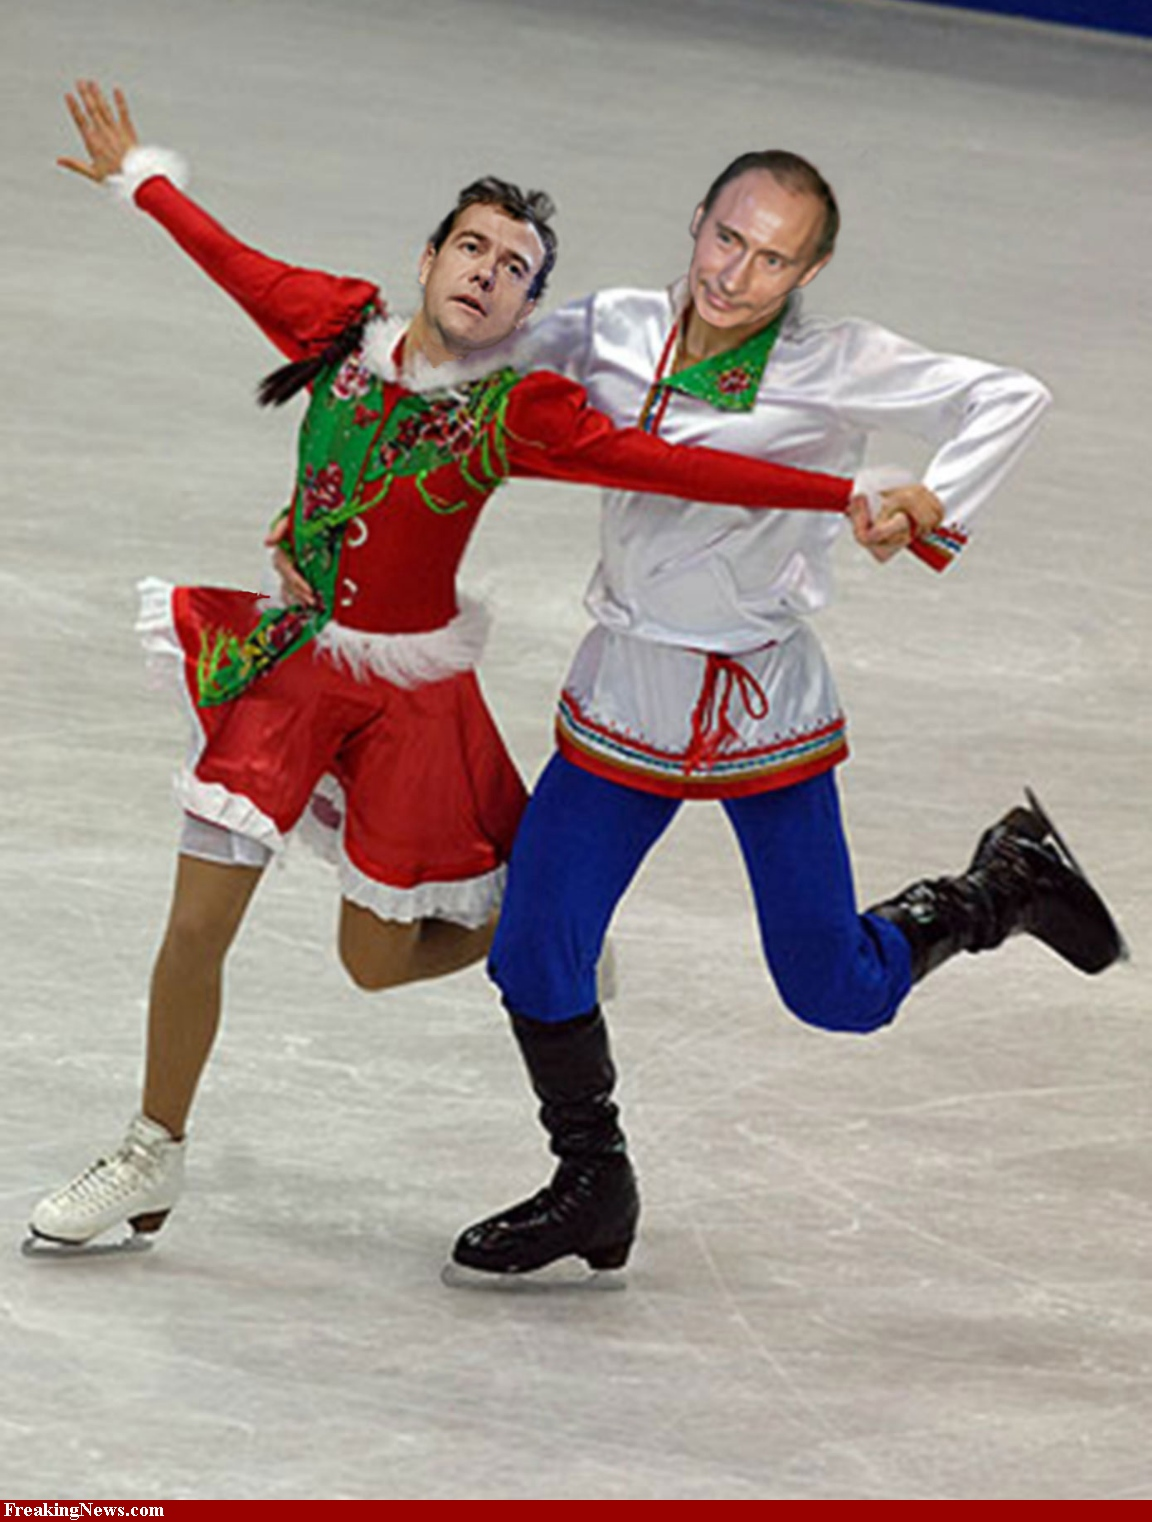 http://3.bp.blogspot.com/-E8pC-kA6Wk4/TxrCNuFyYjI/AAAAAAAAEOM/qips5bJo7N4/s1600/Dmitry%20Medvedev%20and%20Vladimir%20Putin%20Figure%20Skating.jpg